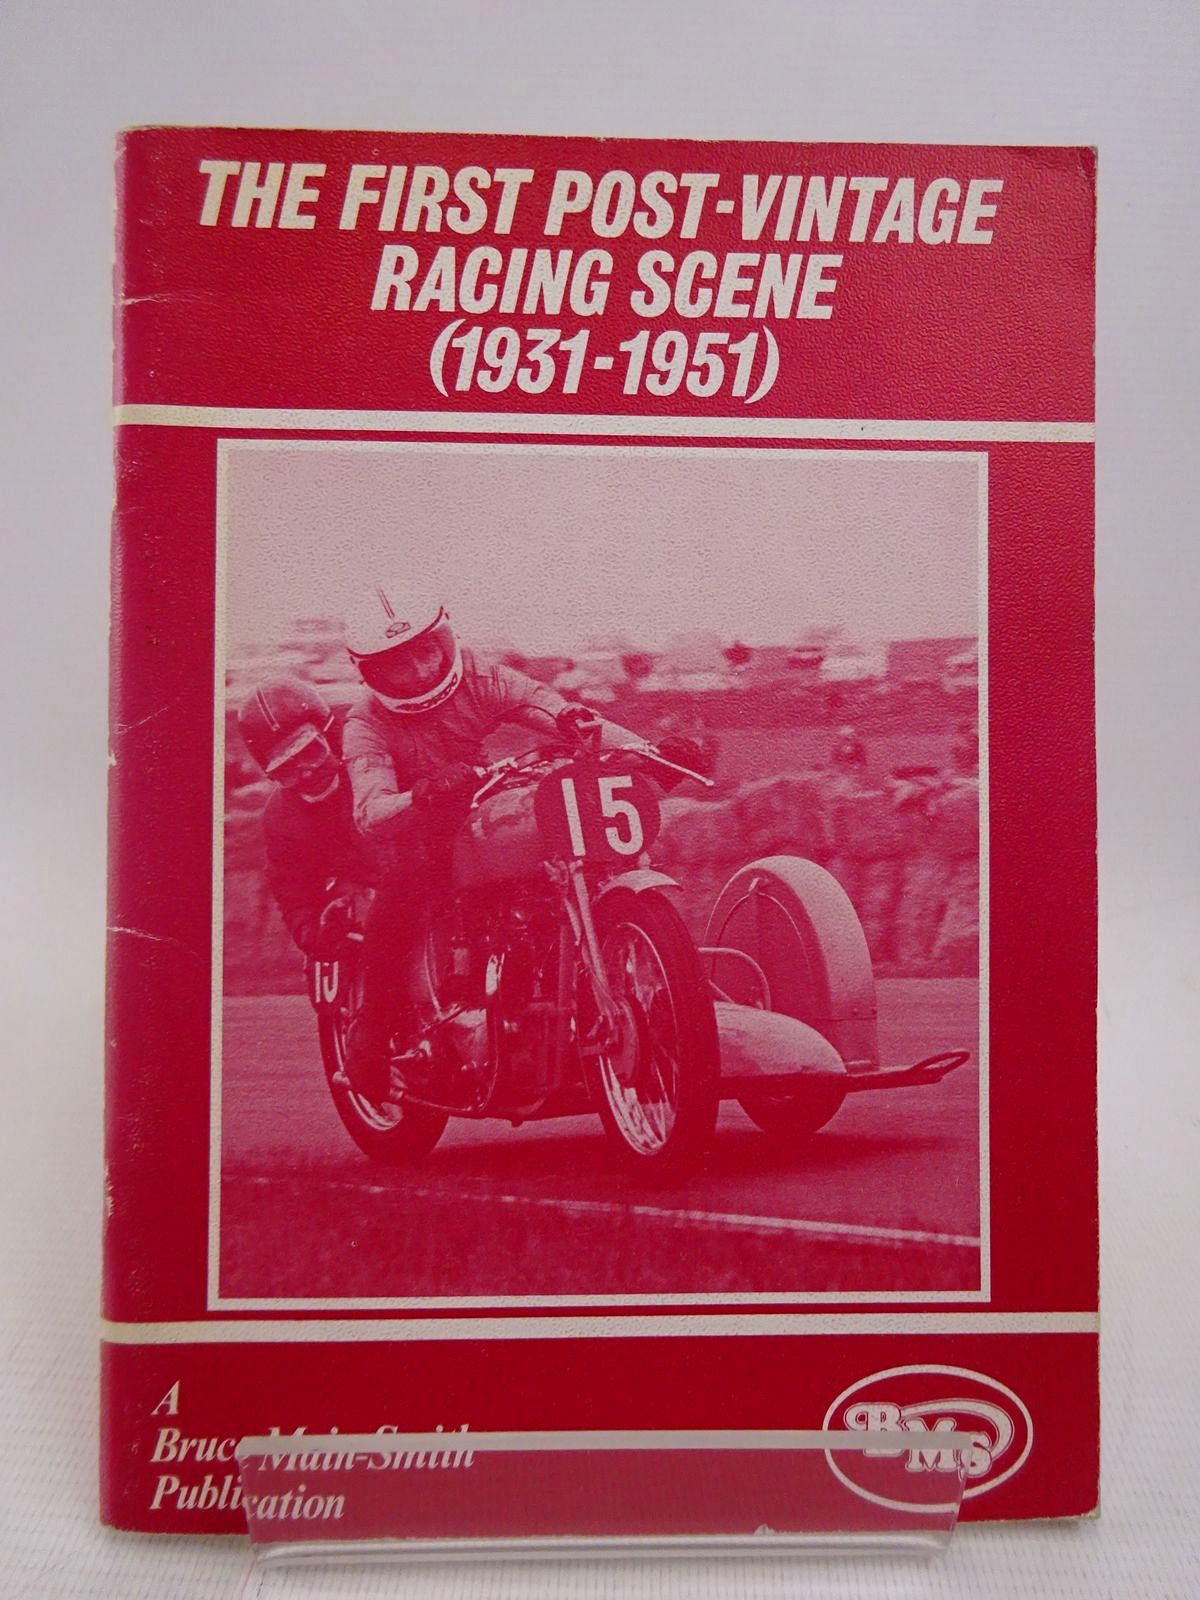 Photo of THE FIRST POST-VINTAGE RACING SCENE (1931-1951) written by Main-Smith, Bruce published by Bruce Main-Smith & Co. Ltd. (STOCK CODE: 1817051)  for sale by Stella & Rose's Books